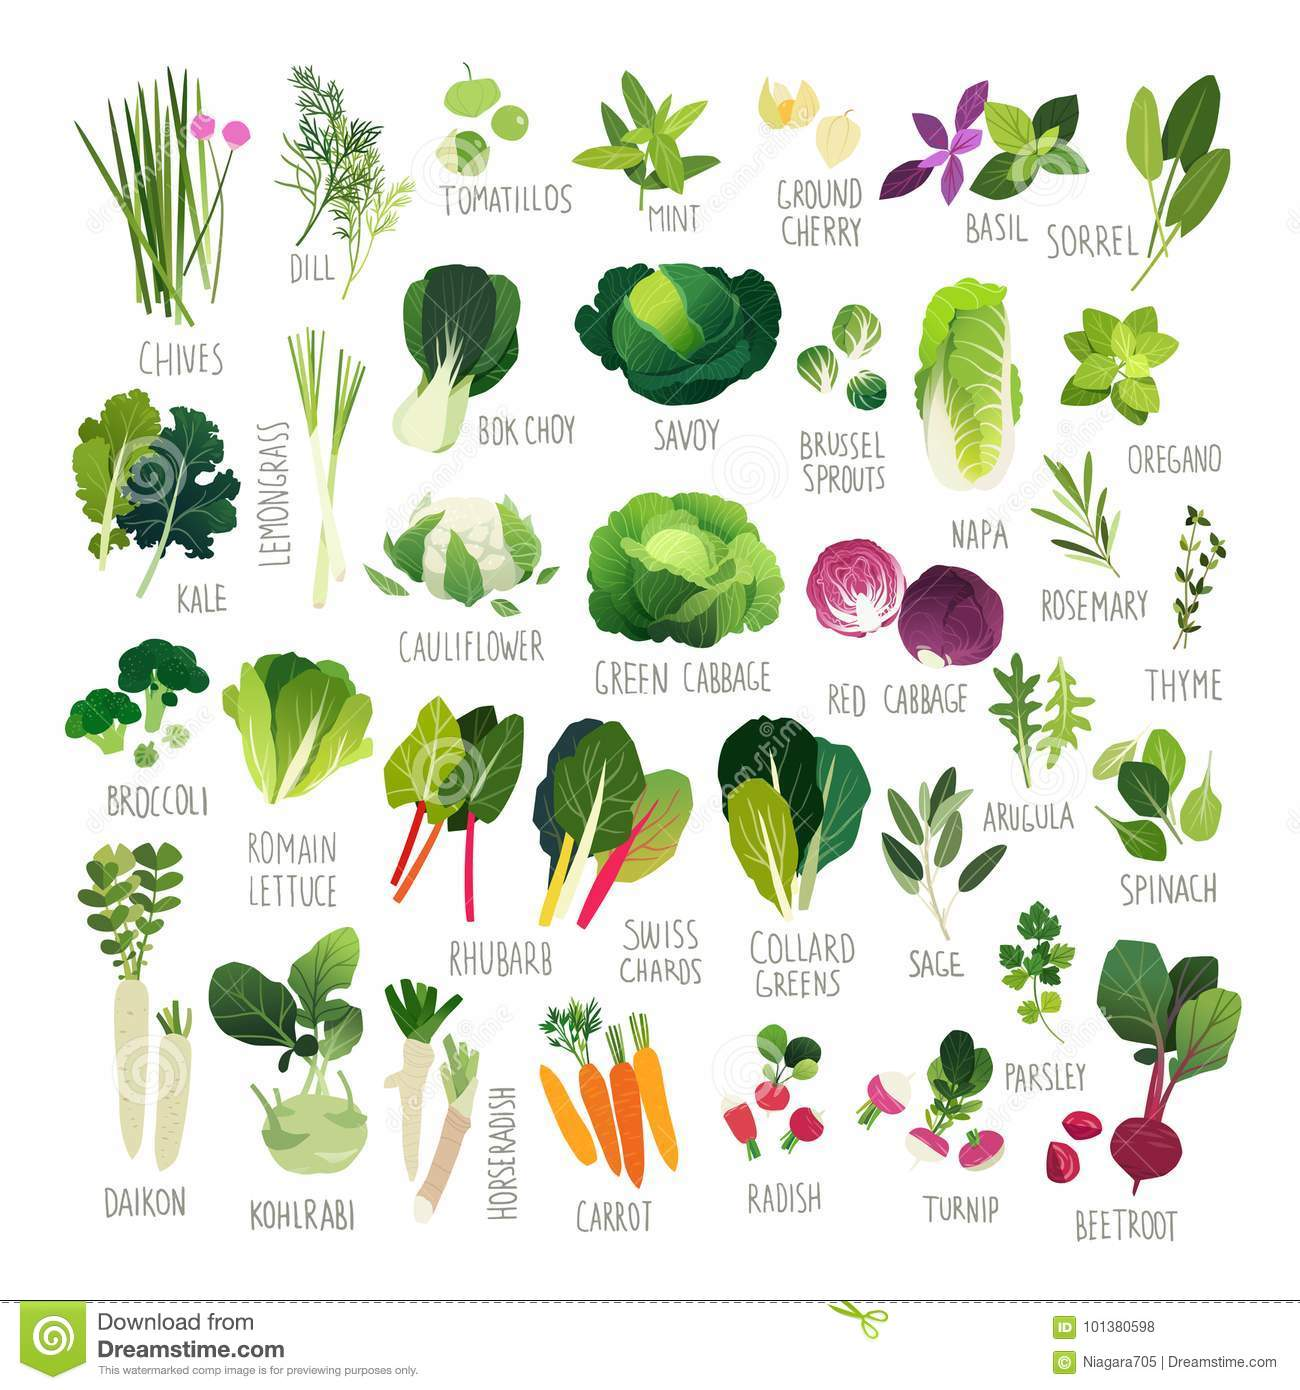 hight resolution of big clip art collection with various kind of vegetables and common culinary herbs